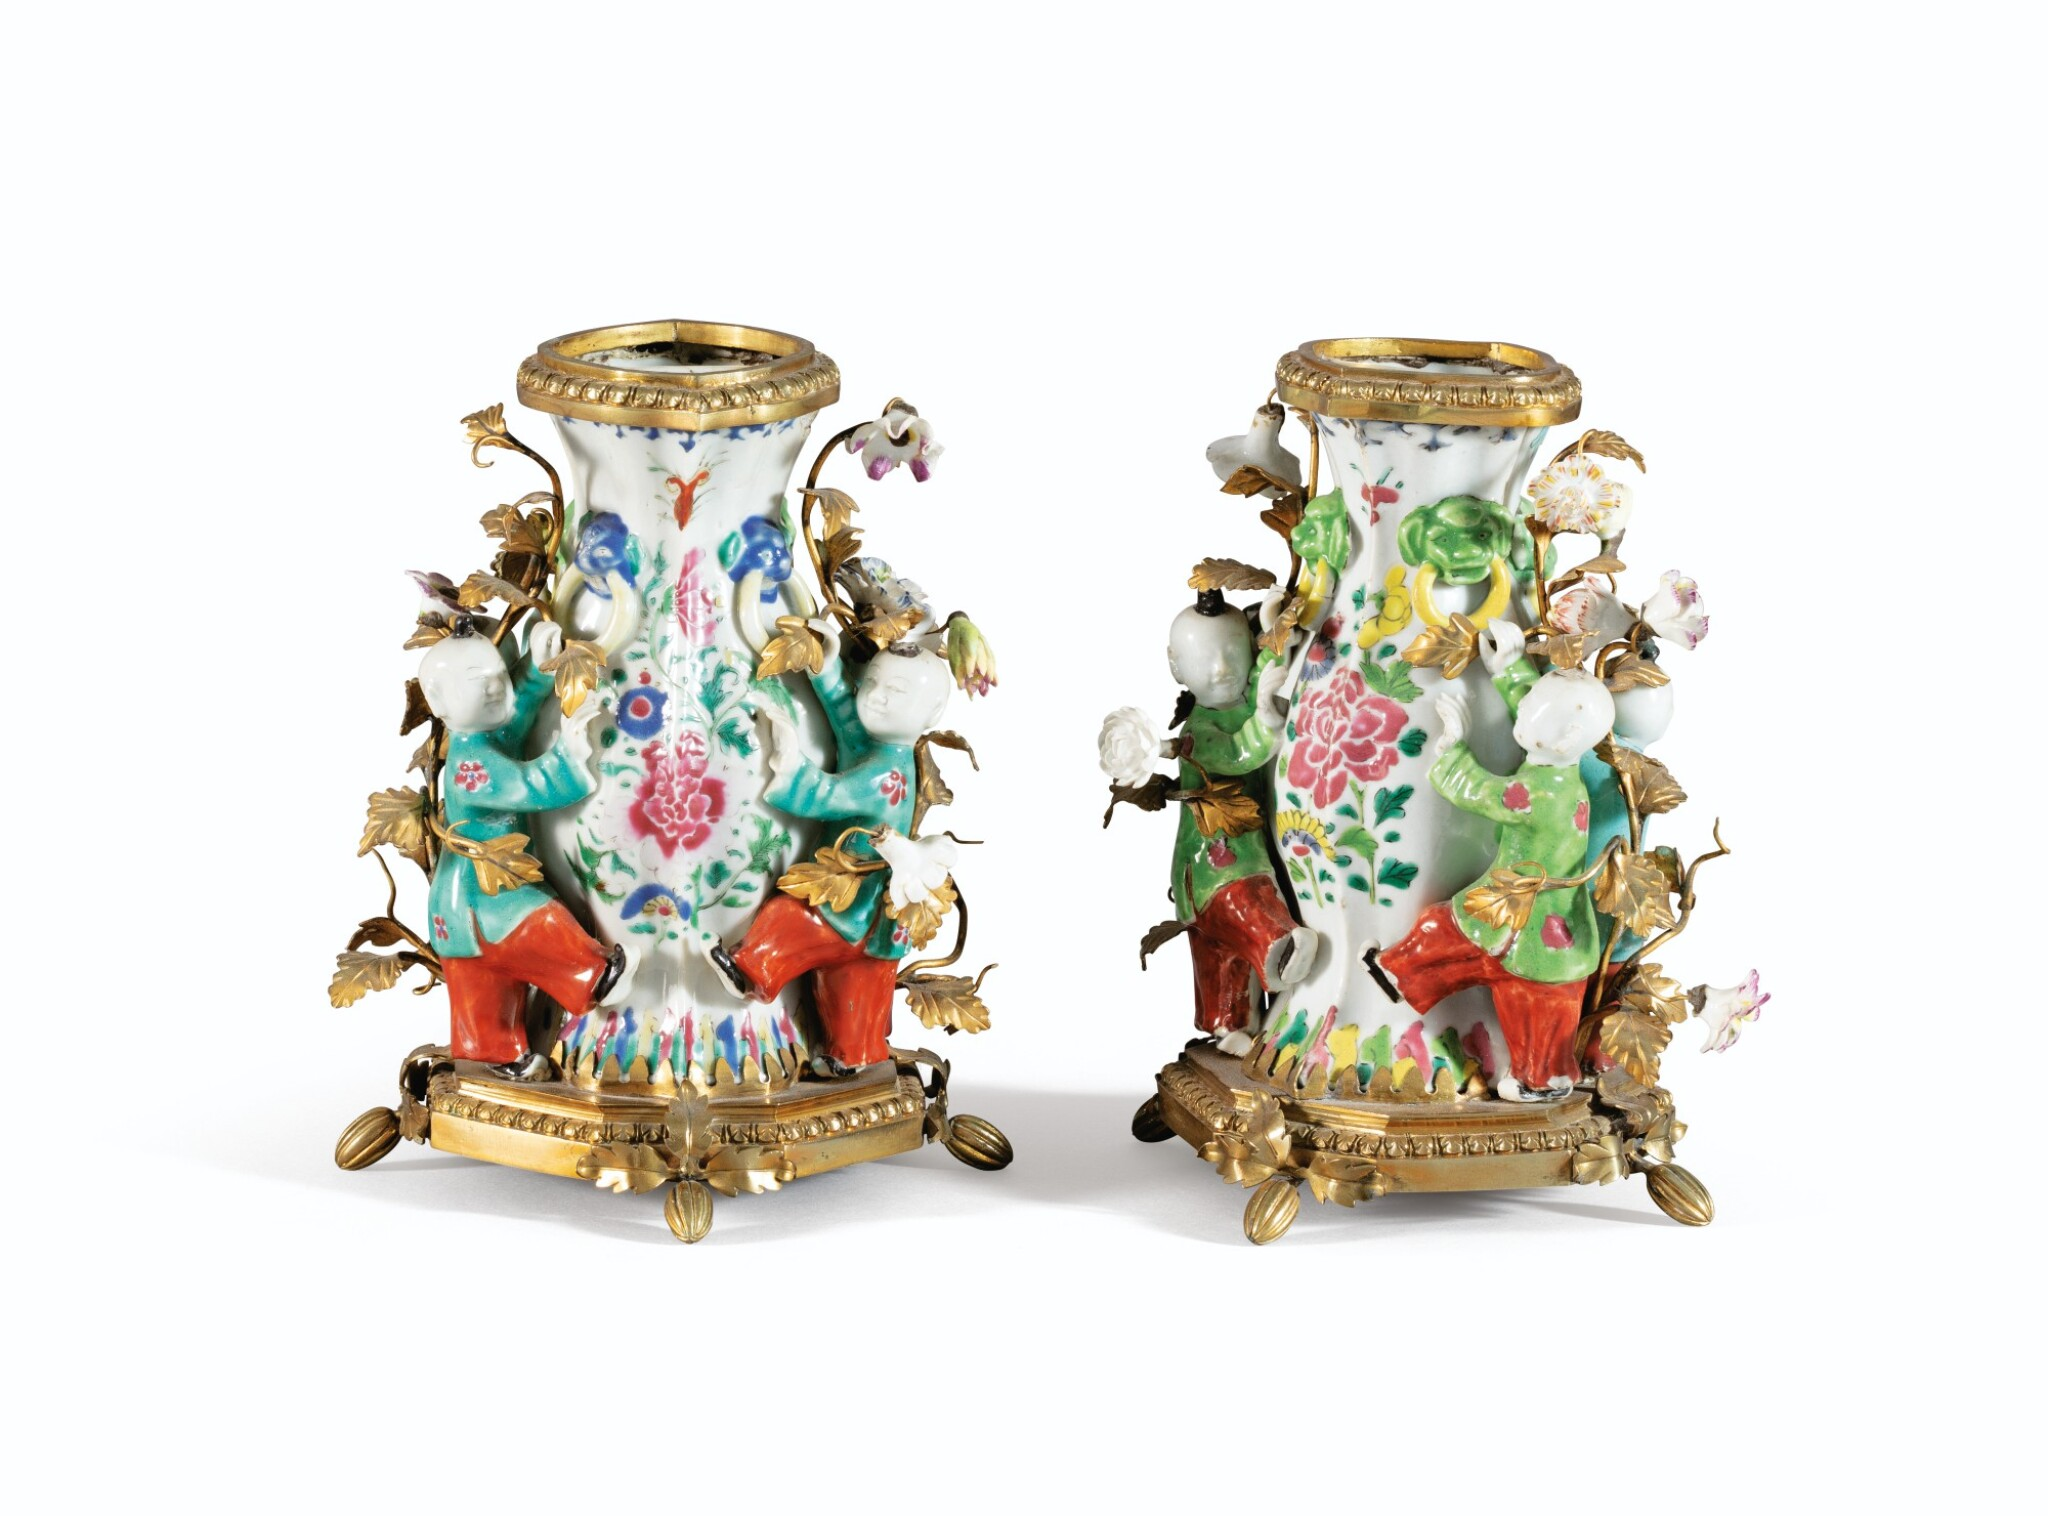 View full screen - View 1 of Lot 33. A PAIR OF LOUIS XV STYLE GILT-BRONZE CHINESE FAMILLE-ROSE PORCELAIN VASES   PAIRE DE VASES EN PORCELAINE FAMILLE ROSE DE CHINE ET BRONZE DORÉ DE STYLE LOUIS XV.